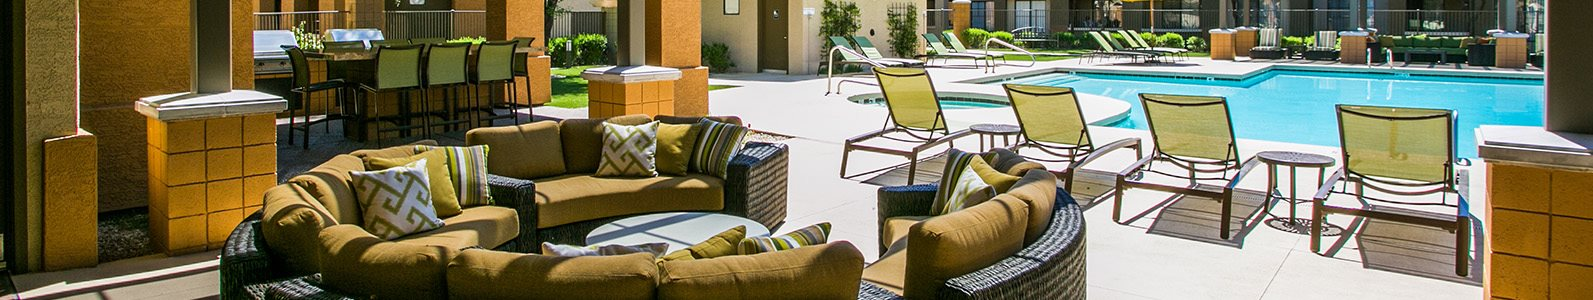 Waterford Outdoor Lounge Sundeck and Pool in East Mesa AZ